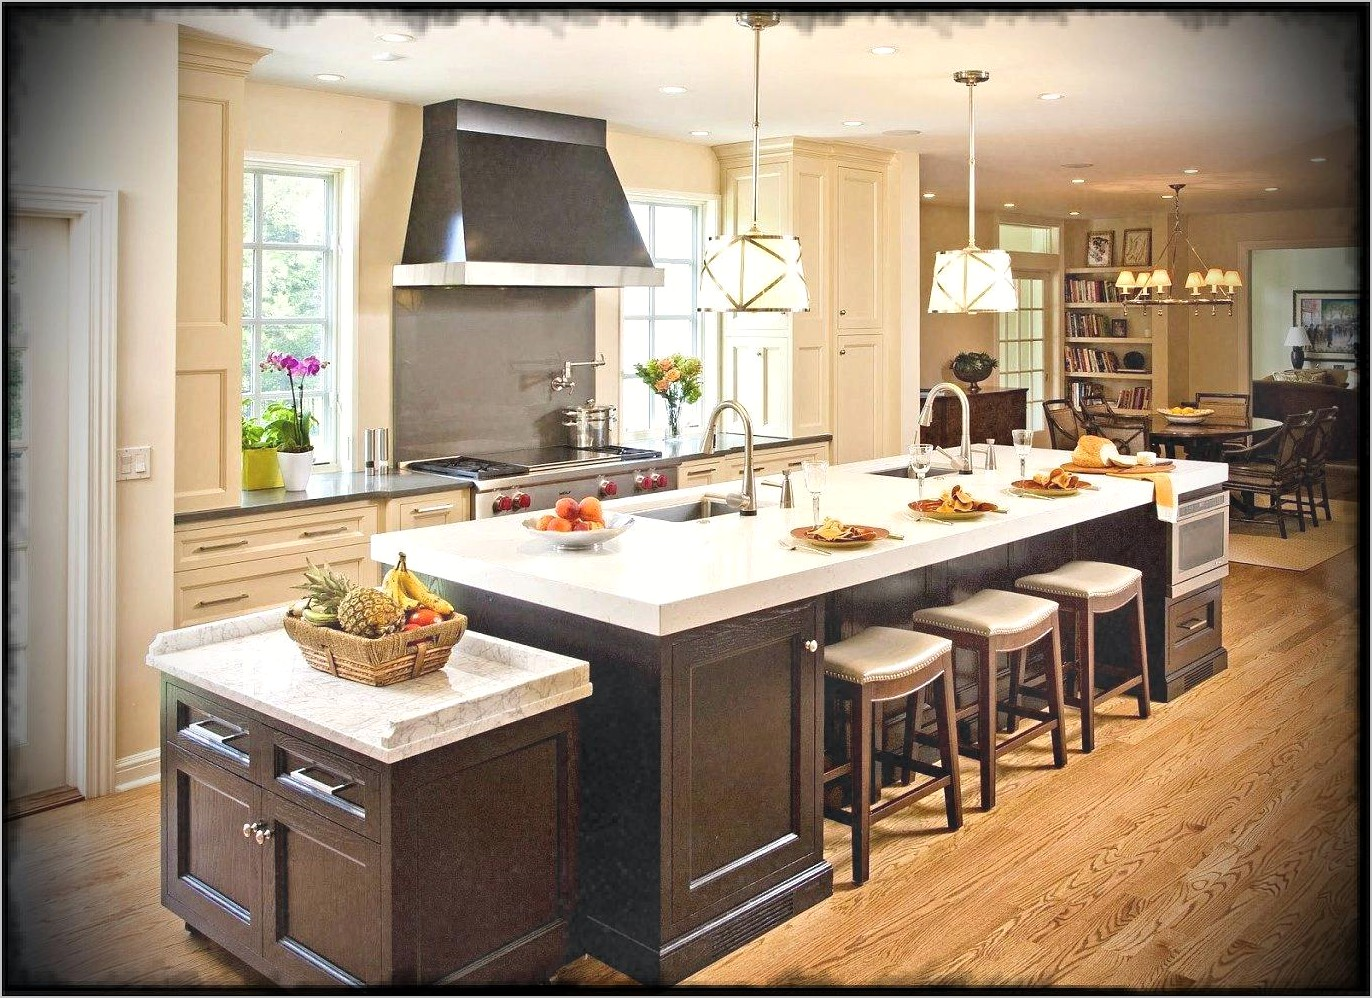 Pics Of Kitchen Islands Decor